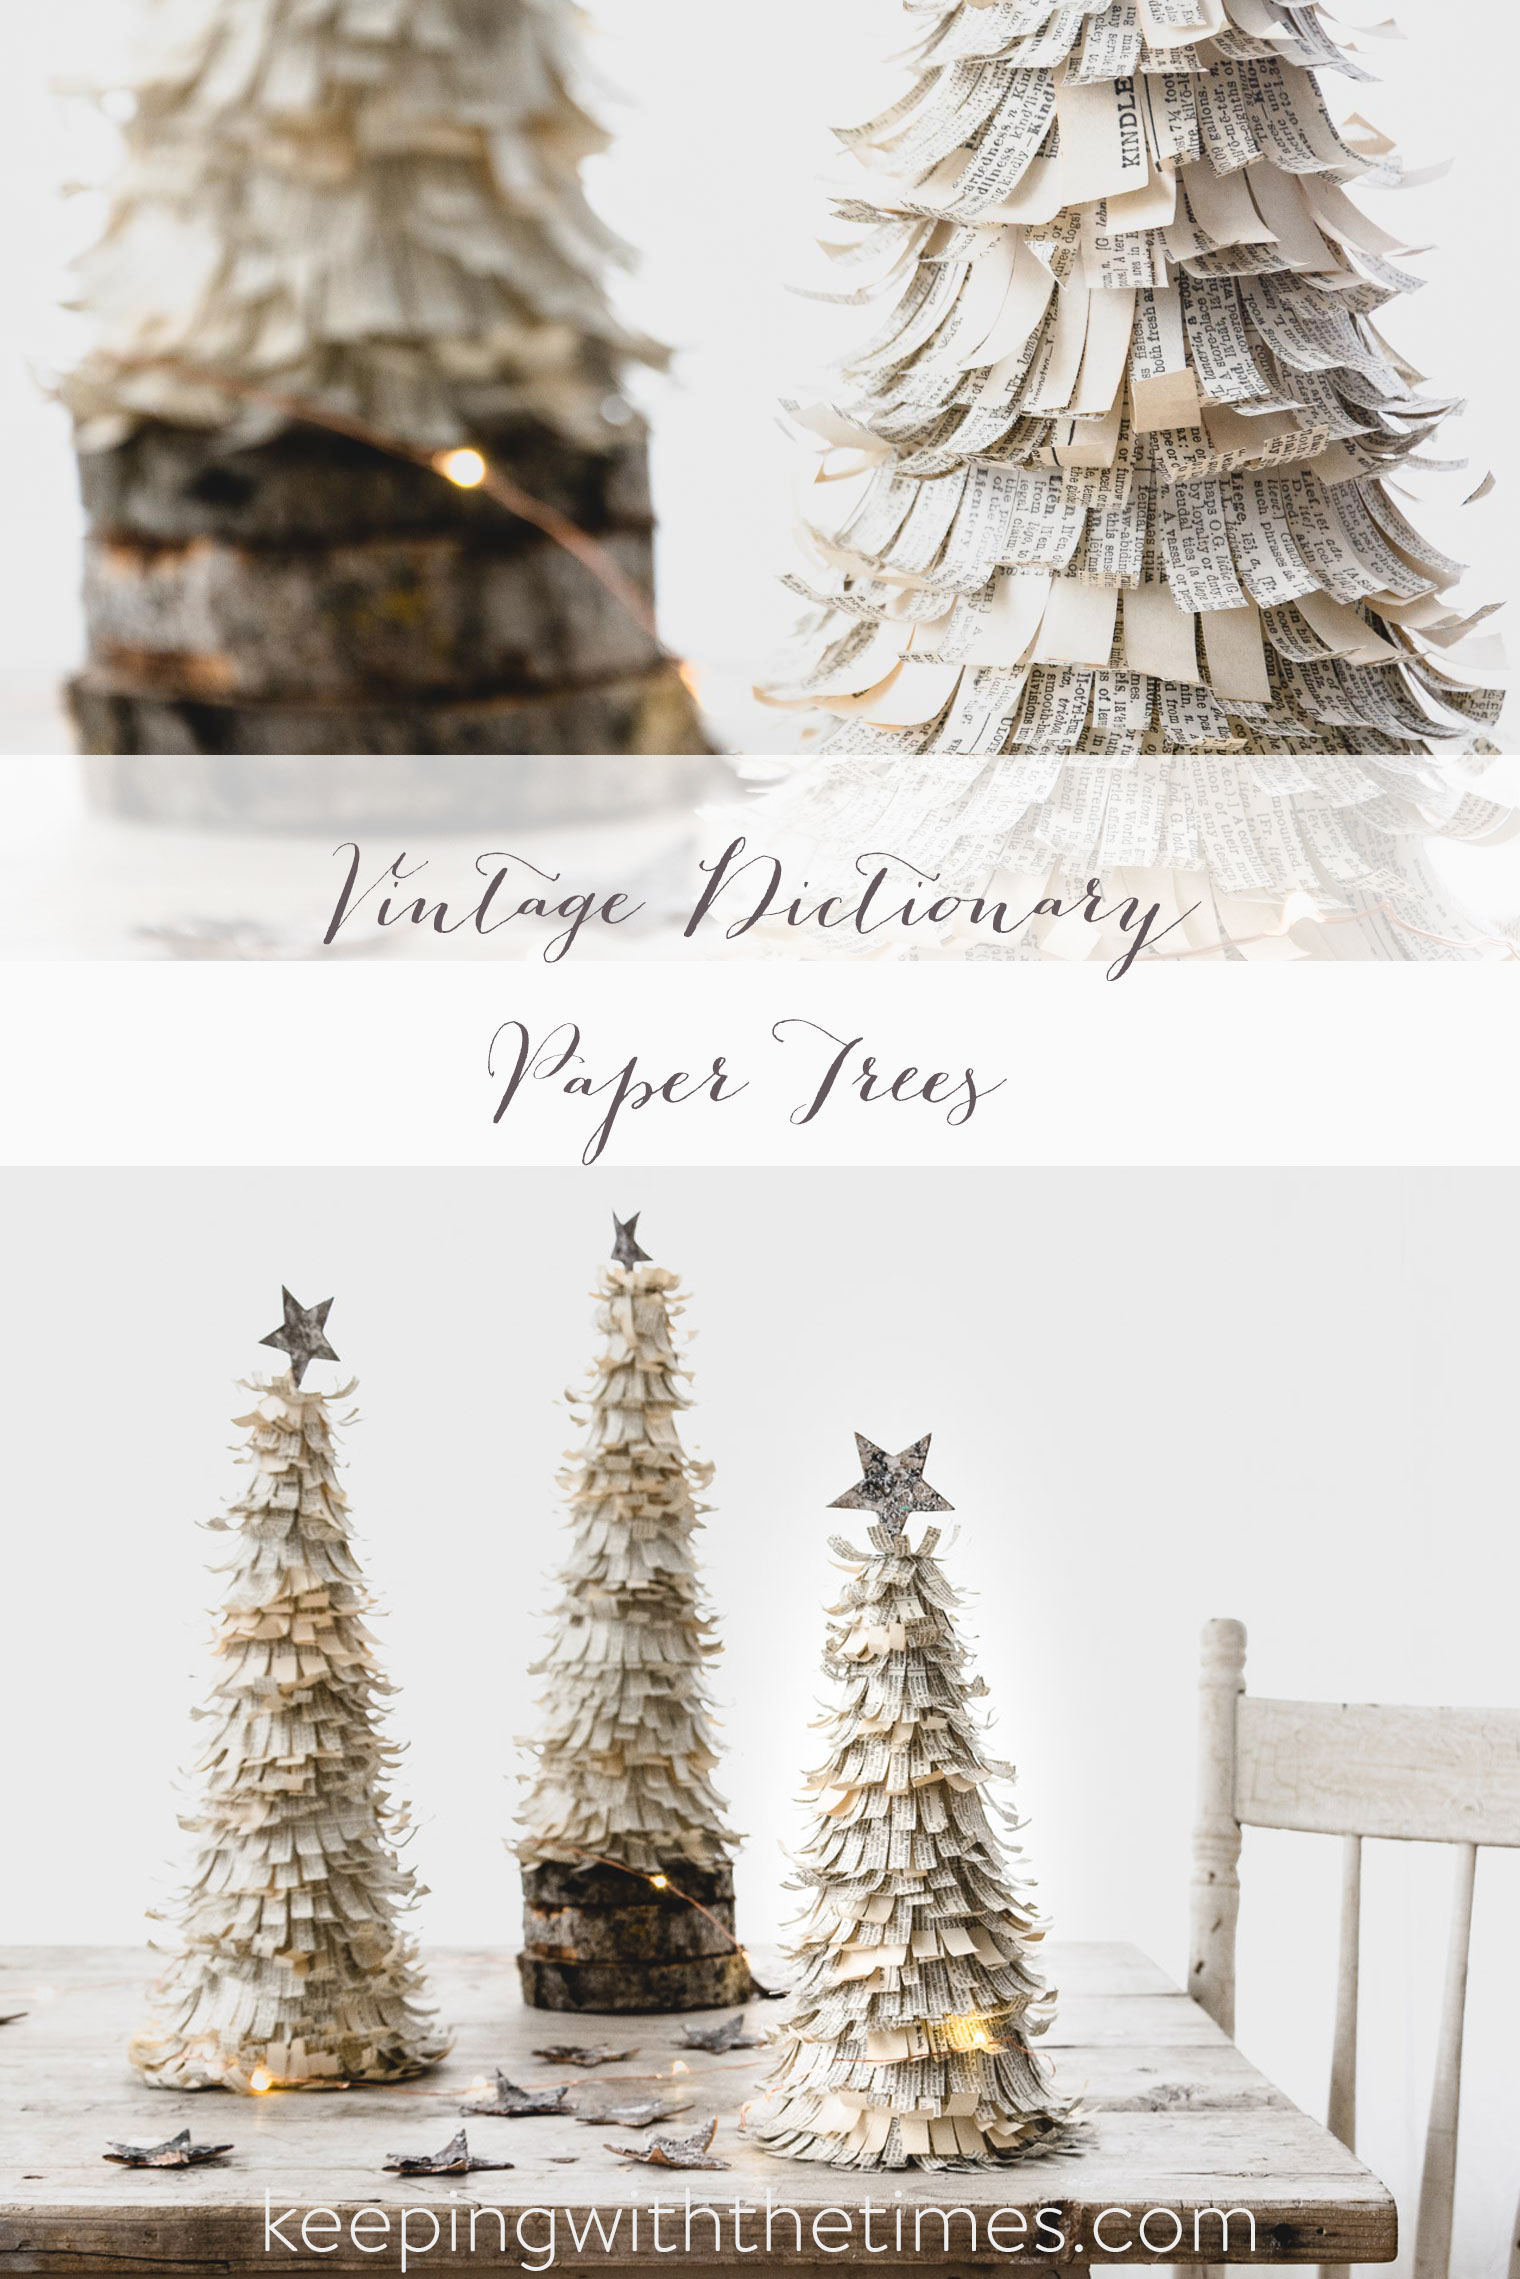 Dictionary Paper Trees, Keeping With the Times, Barb Brookbank